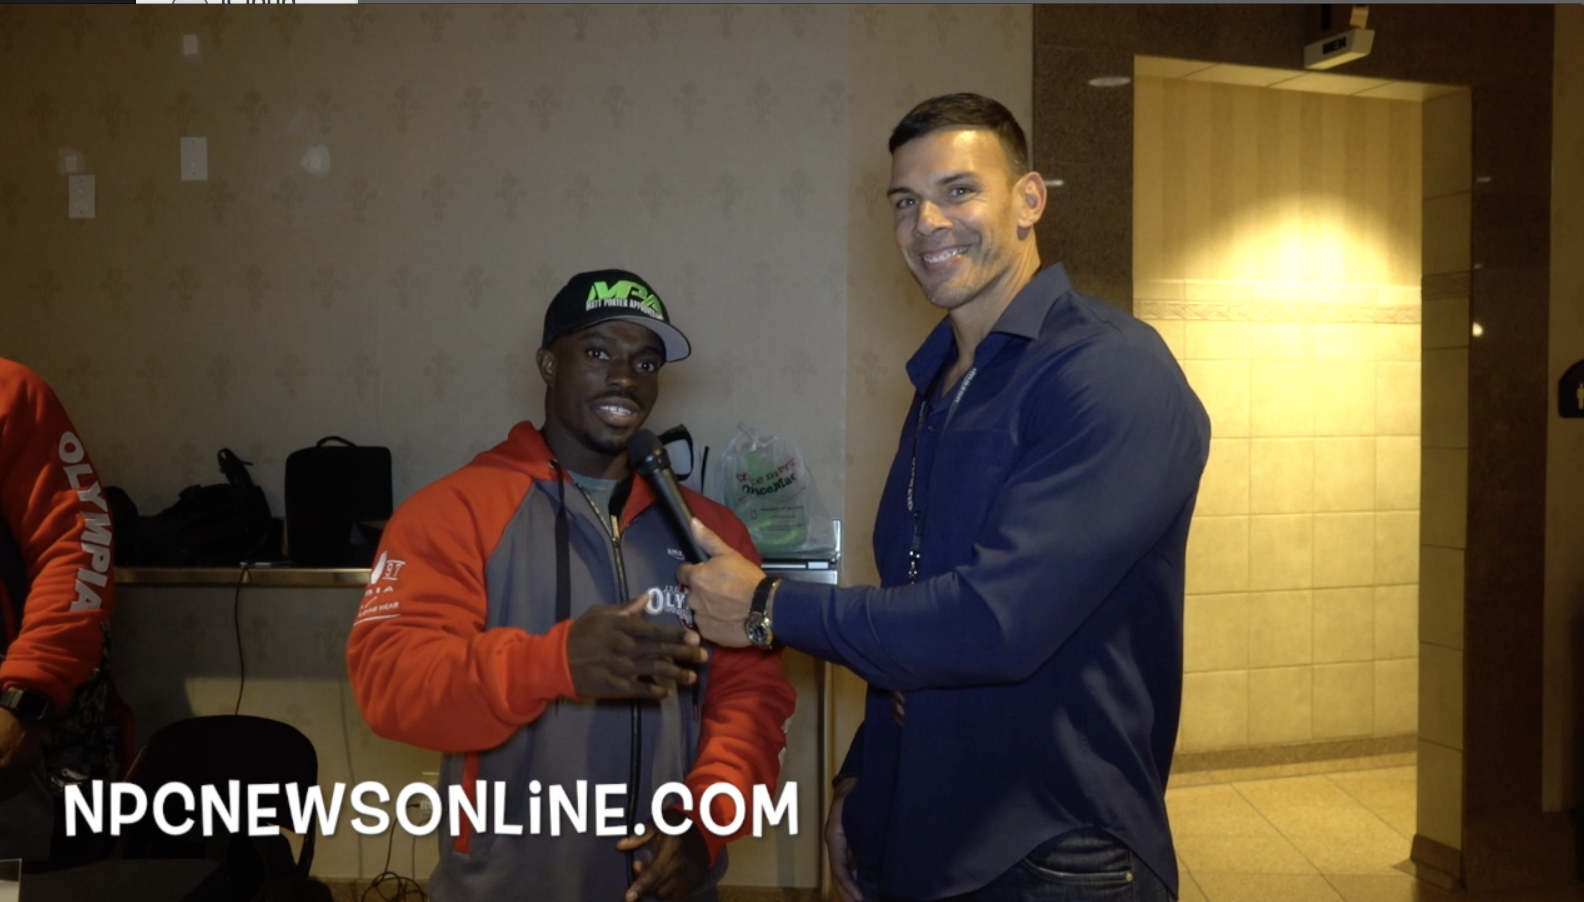 IFBB Classic Physique Pro Terrence Ruffin Contest Prep Tip Interview By NPC News Online Editor In Chief Frank Sepe